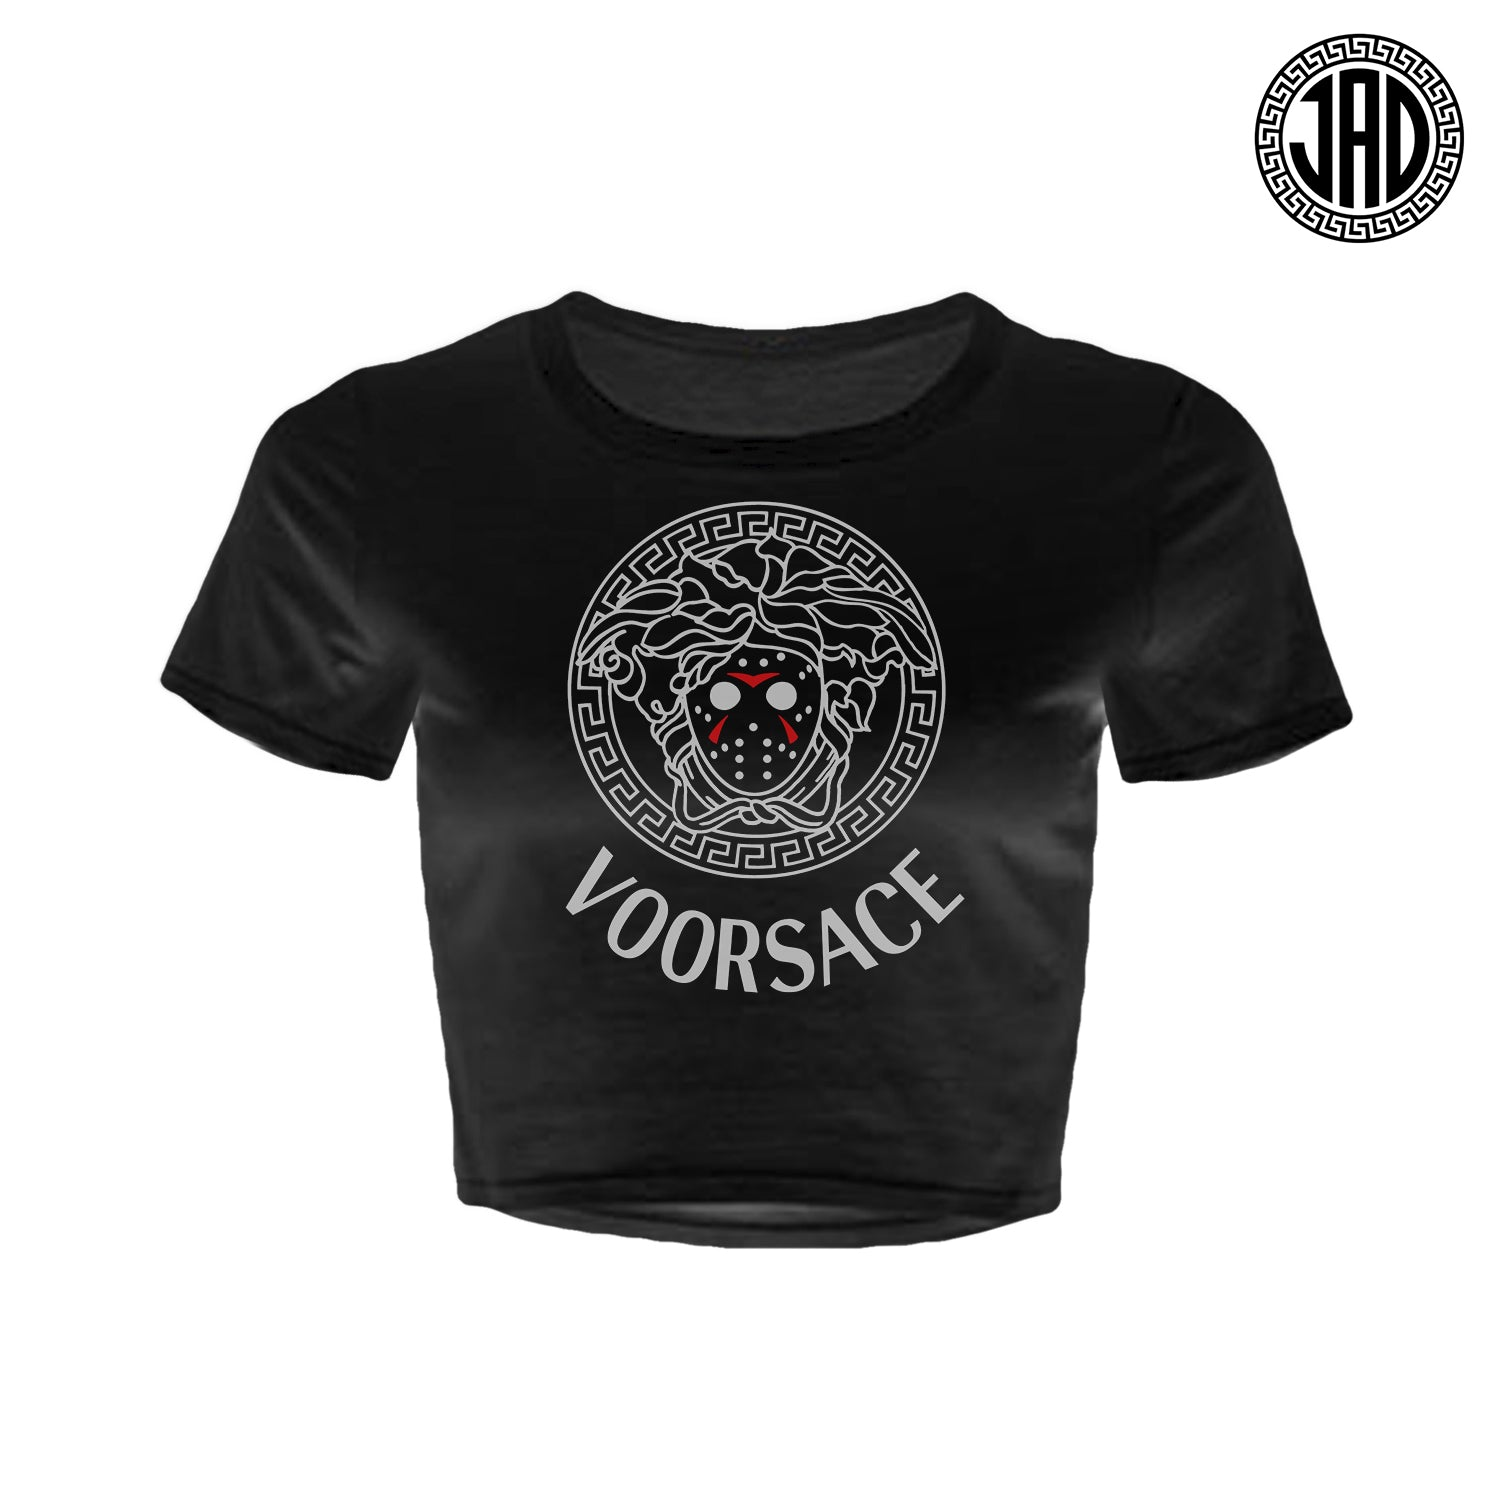 Voorsace - Women's Crop Top